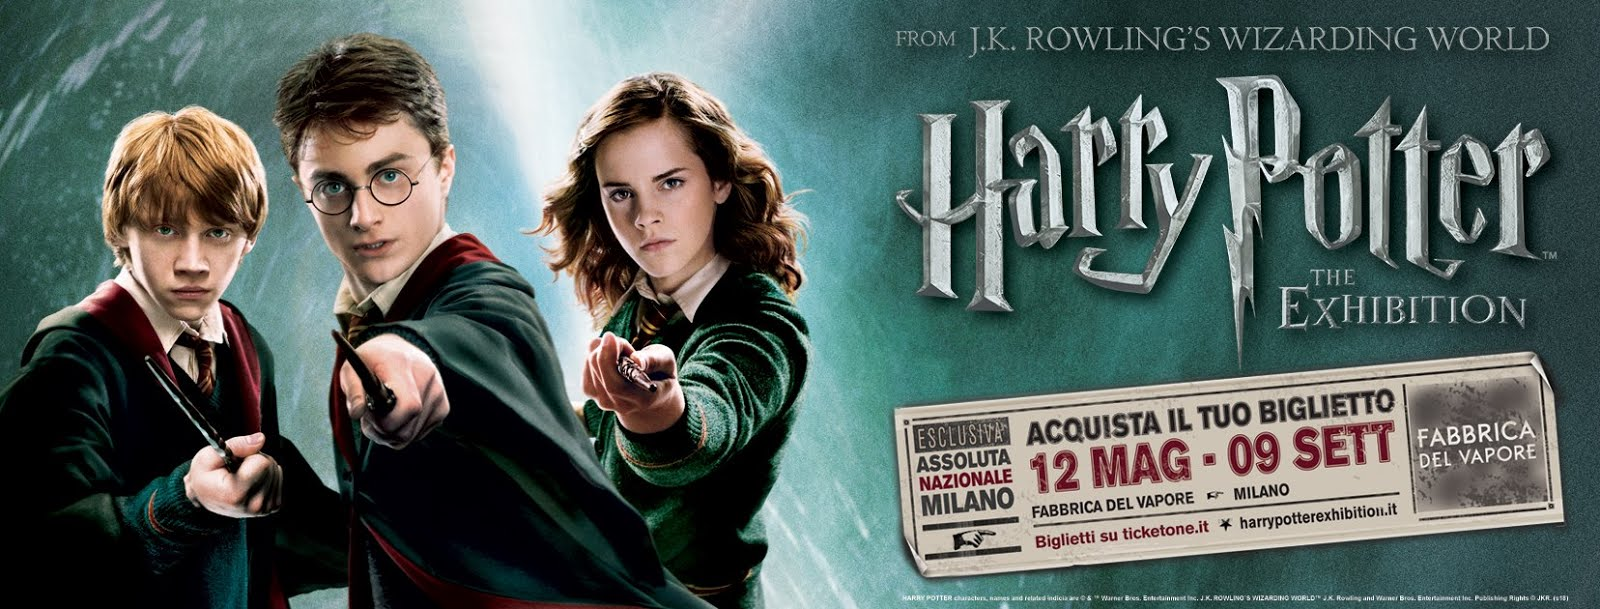 I 20 anni di Harry Potter